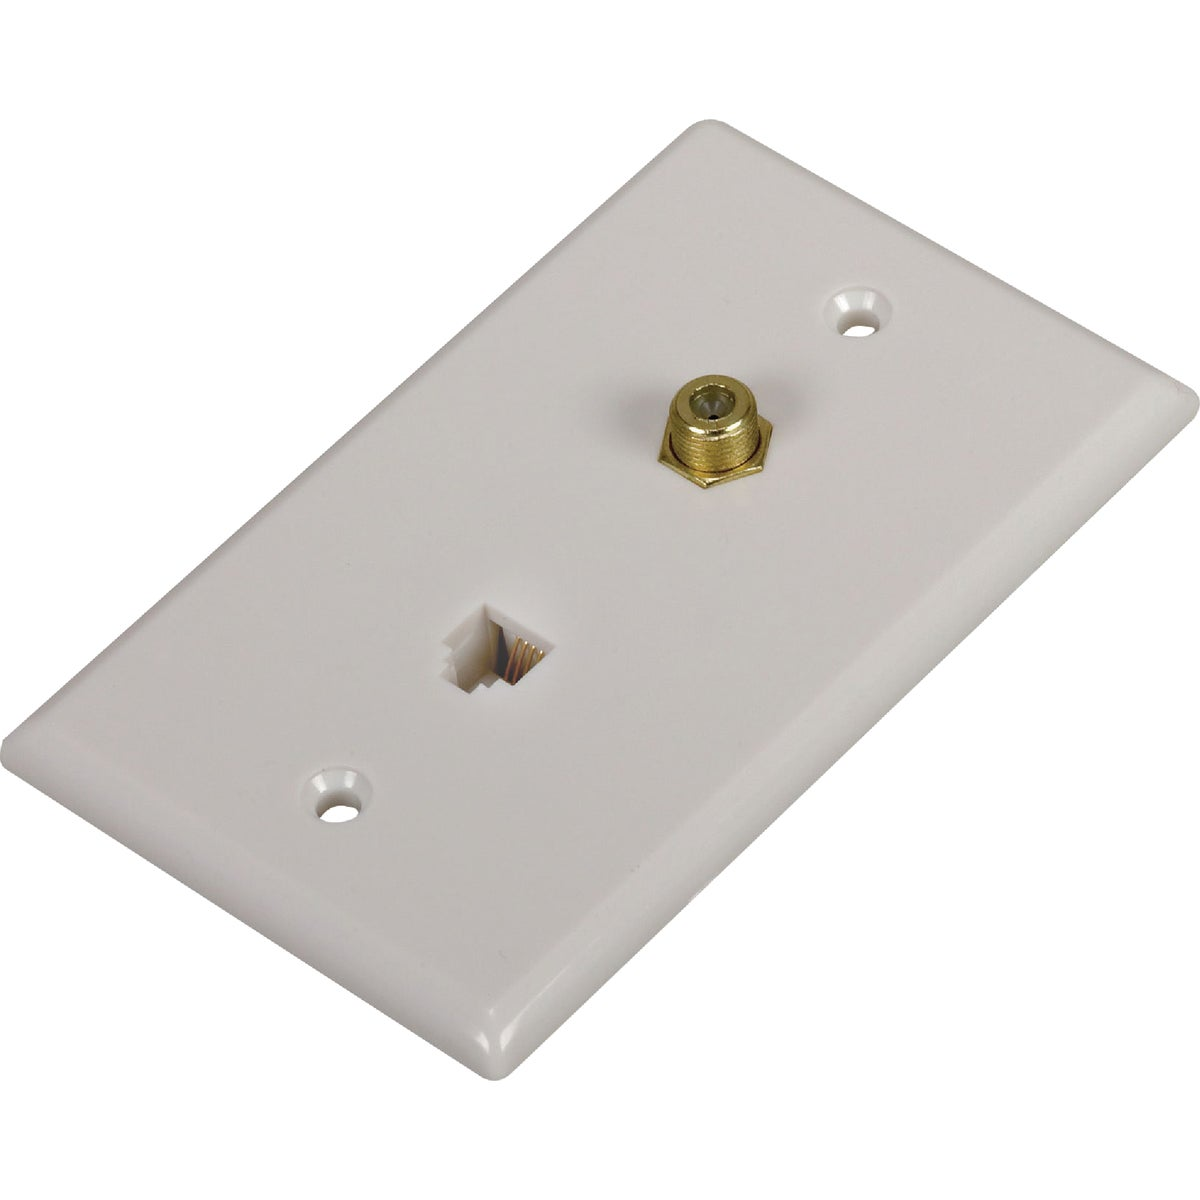 PHONE/COAX WALL PLATE - TP062WHRV by Audiovox Accessories